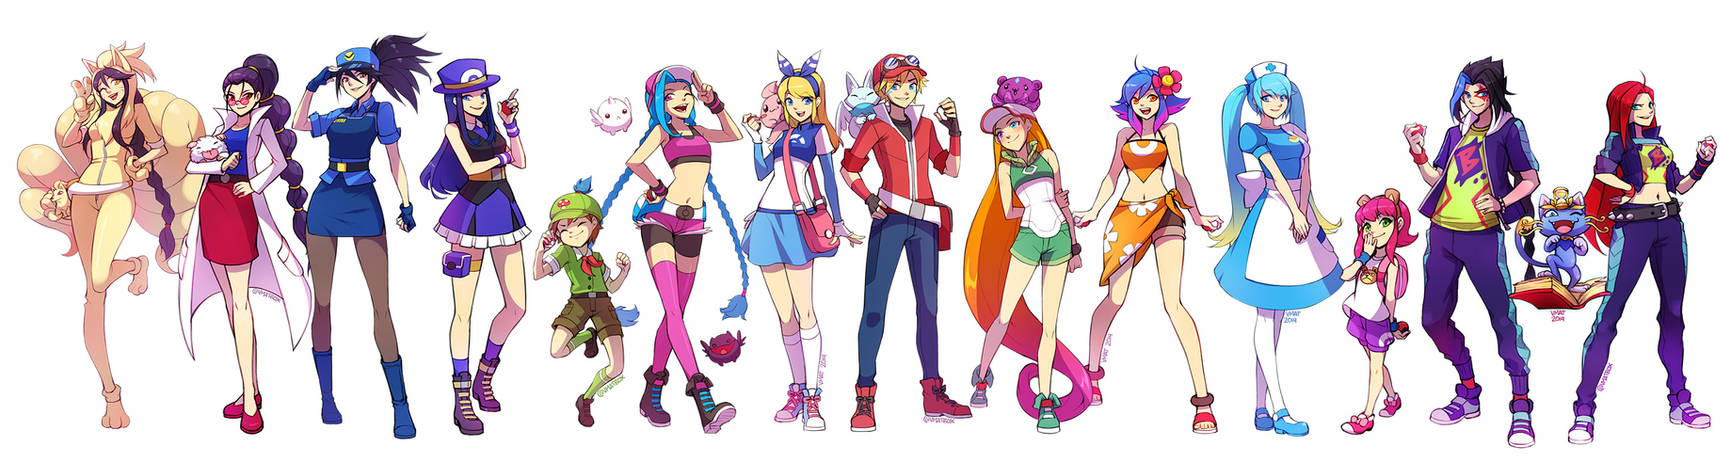 League of Legends champions as Pokemon Trainers